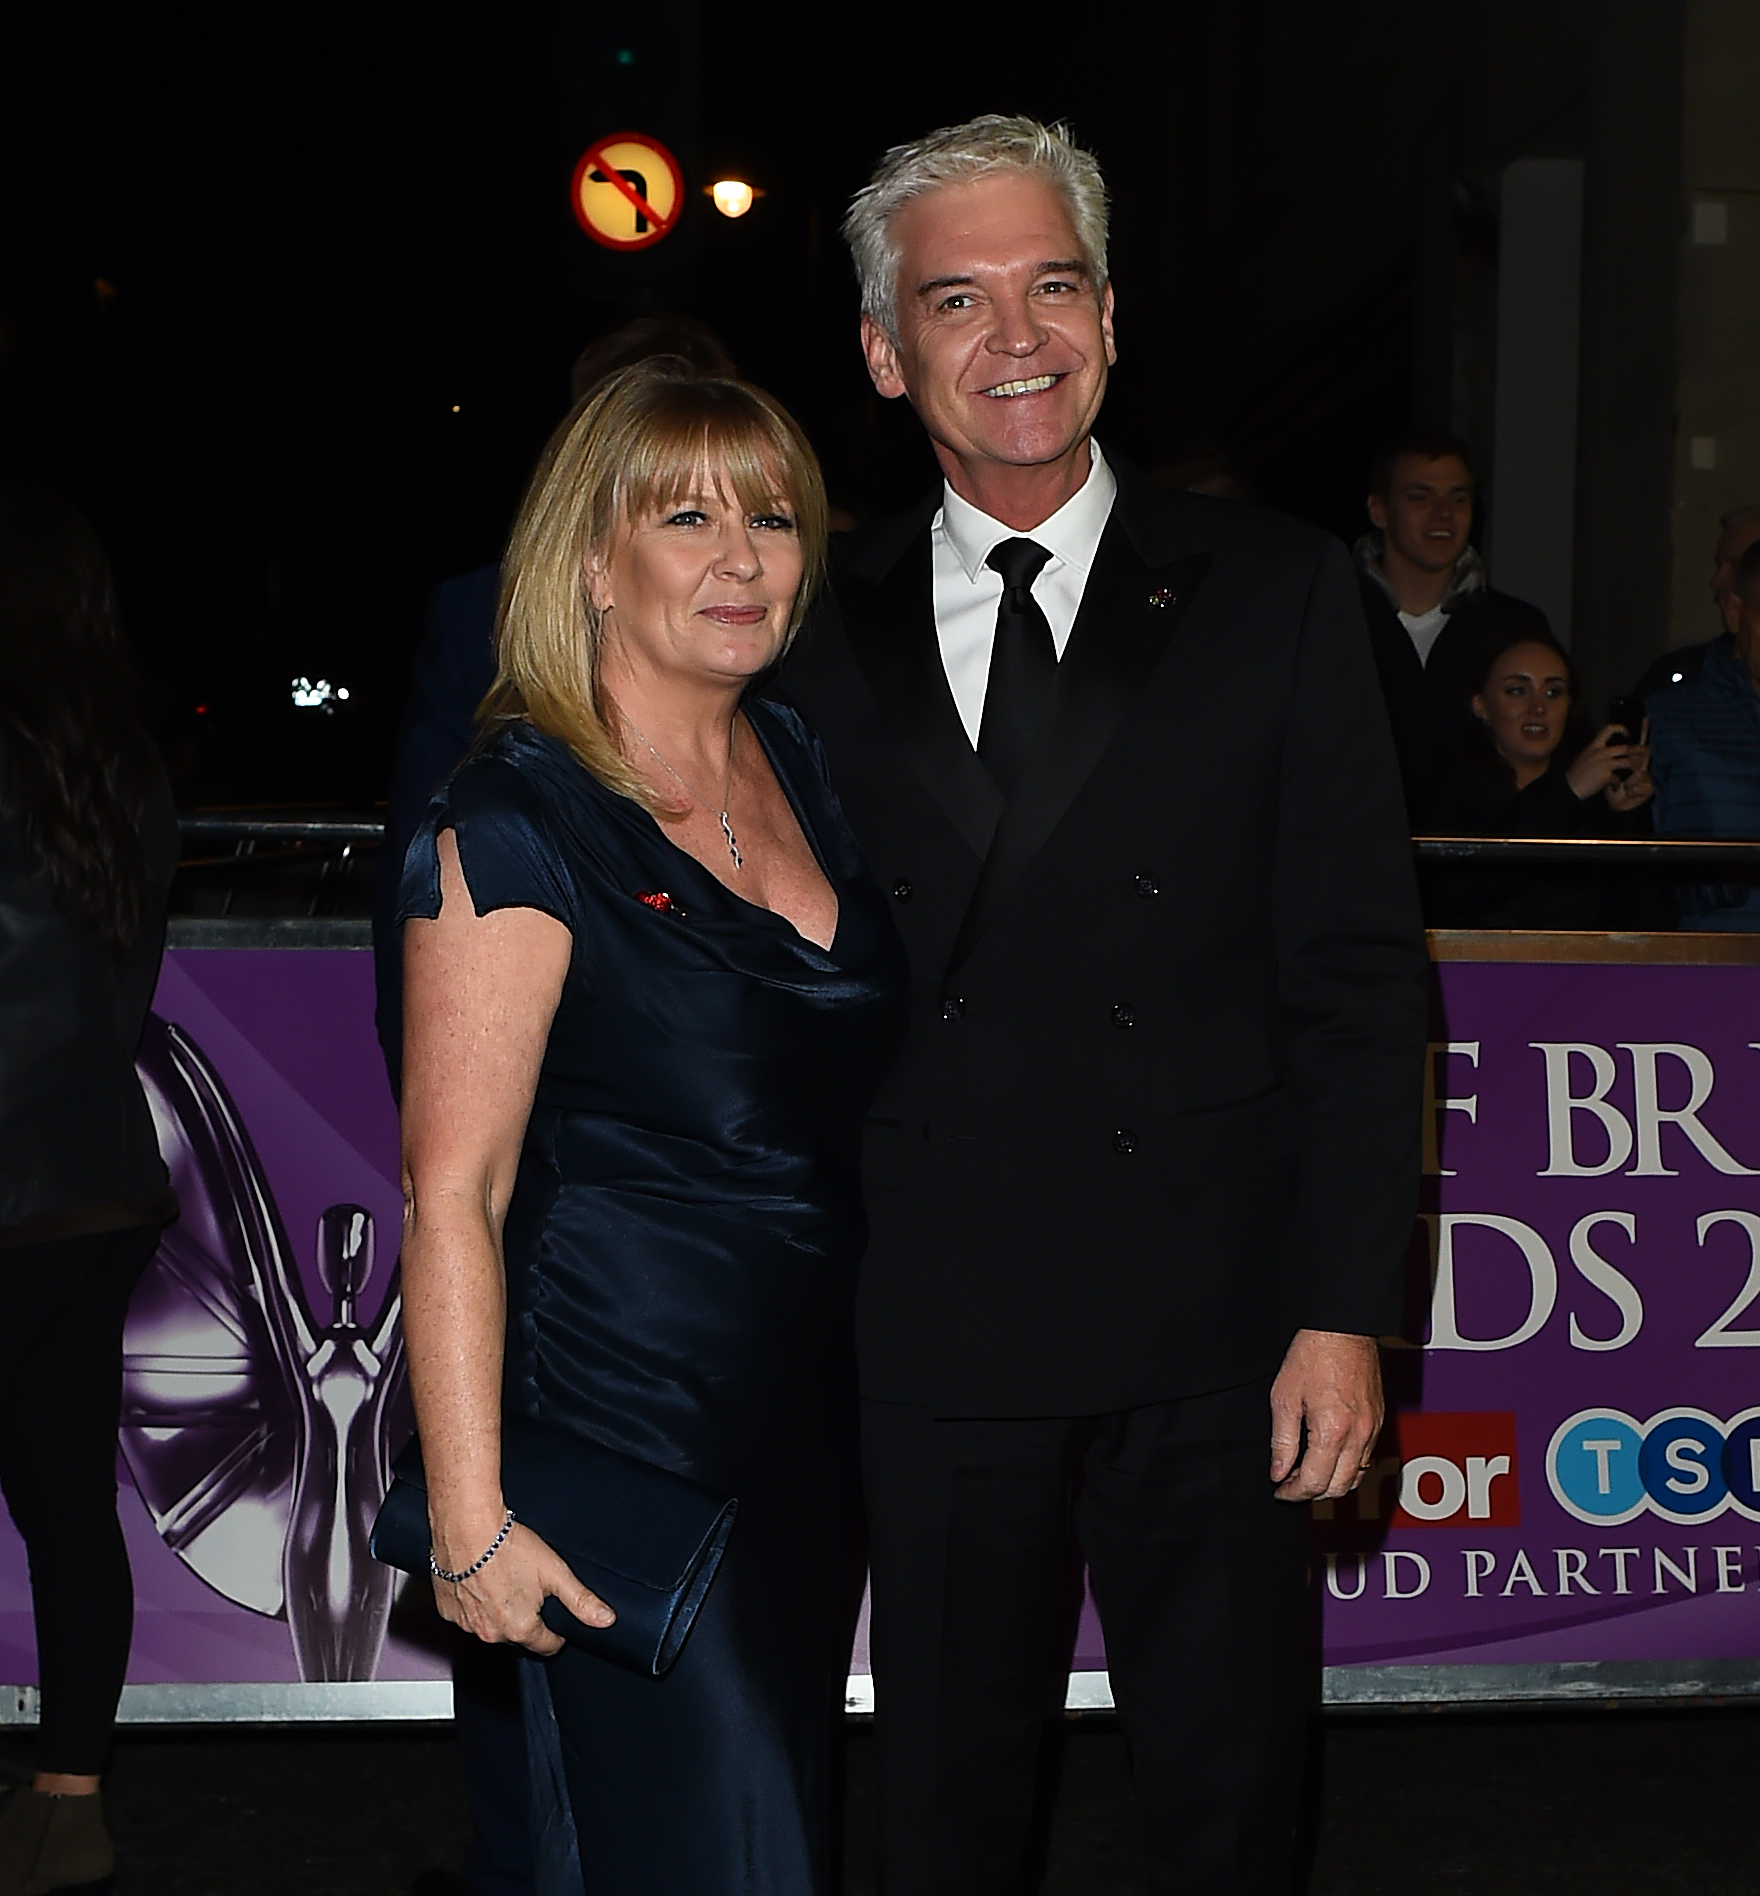 Celebrities arrive at the Pride of Britain Awards 2017 Pictured: Phillip Schofield and wife Stephanie,Holly Willoughby Lauren Pope Chloe Sims Alesha Dixon Myleen Klass Amanda Holden HRH Prince William Binky Felstead Phillip Schofield wife Stephanie Duncan Bannatyne Loose Women Guest Katherine Kelly Tracey Jefford Jamie Vardy Louis Walsh Brian Conley Alexandra Burke Gorka Marquez Sarah Richards Aston Merrygold Jeremy Corbyn Brook Vincent Jane Danson Brooke Vincent Peter Jones Oti Mabuse Jonnie Peacock Karen Clifton Simon Rmmer Simon Rimmer Ref: SPL1611673 301017 NON-EXCLUSIVE Picture by: SplashNews.com Splash News and Pictures Los Angeles: 310-821-2666 New York: 212-619-2666 London: +44 (0)20 7644 7656 Berlin: +49 175 3764 166 photodesk@splashnews.com World Rights